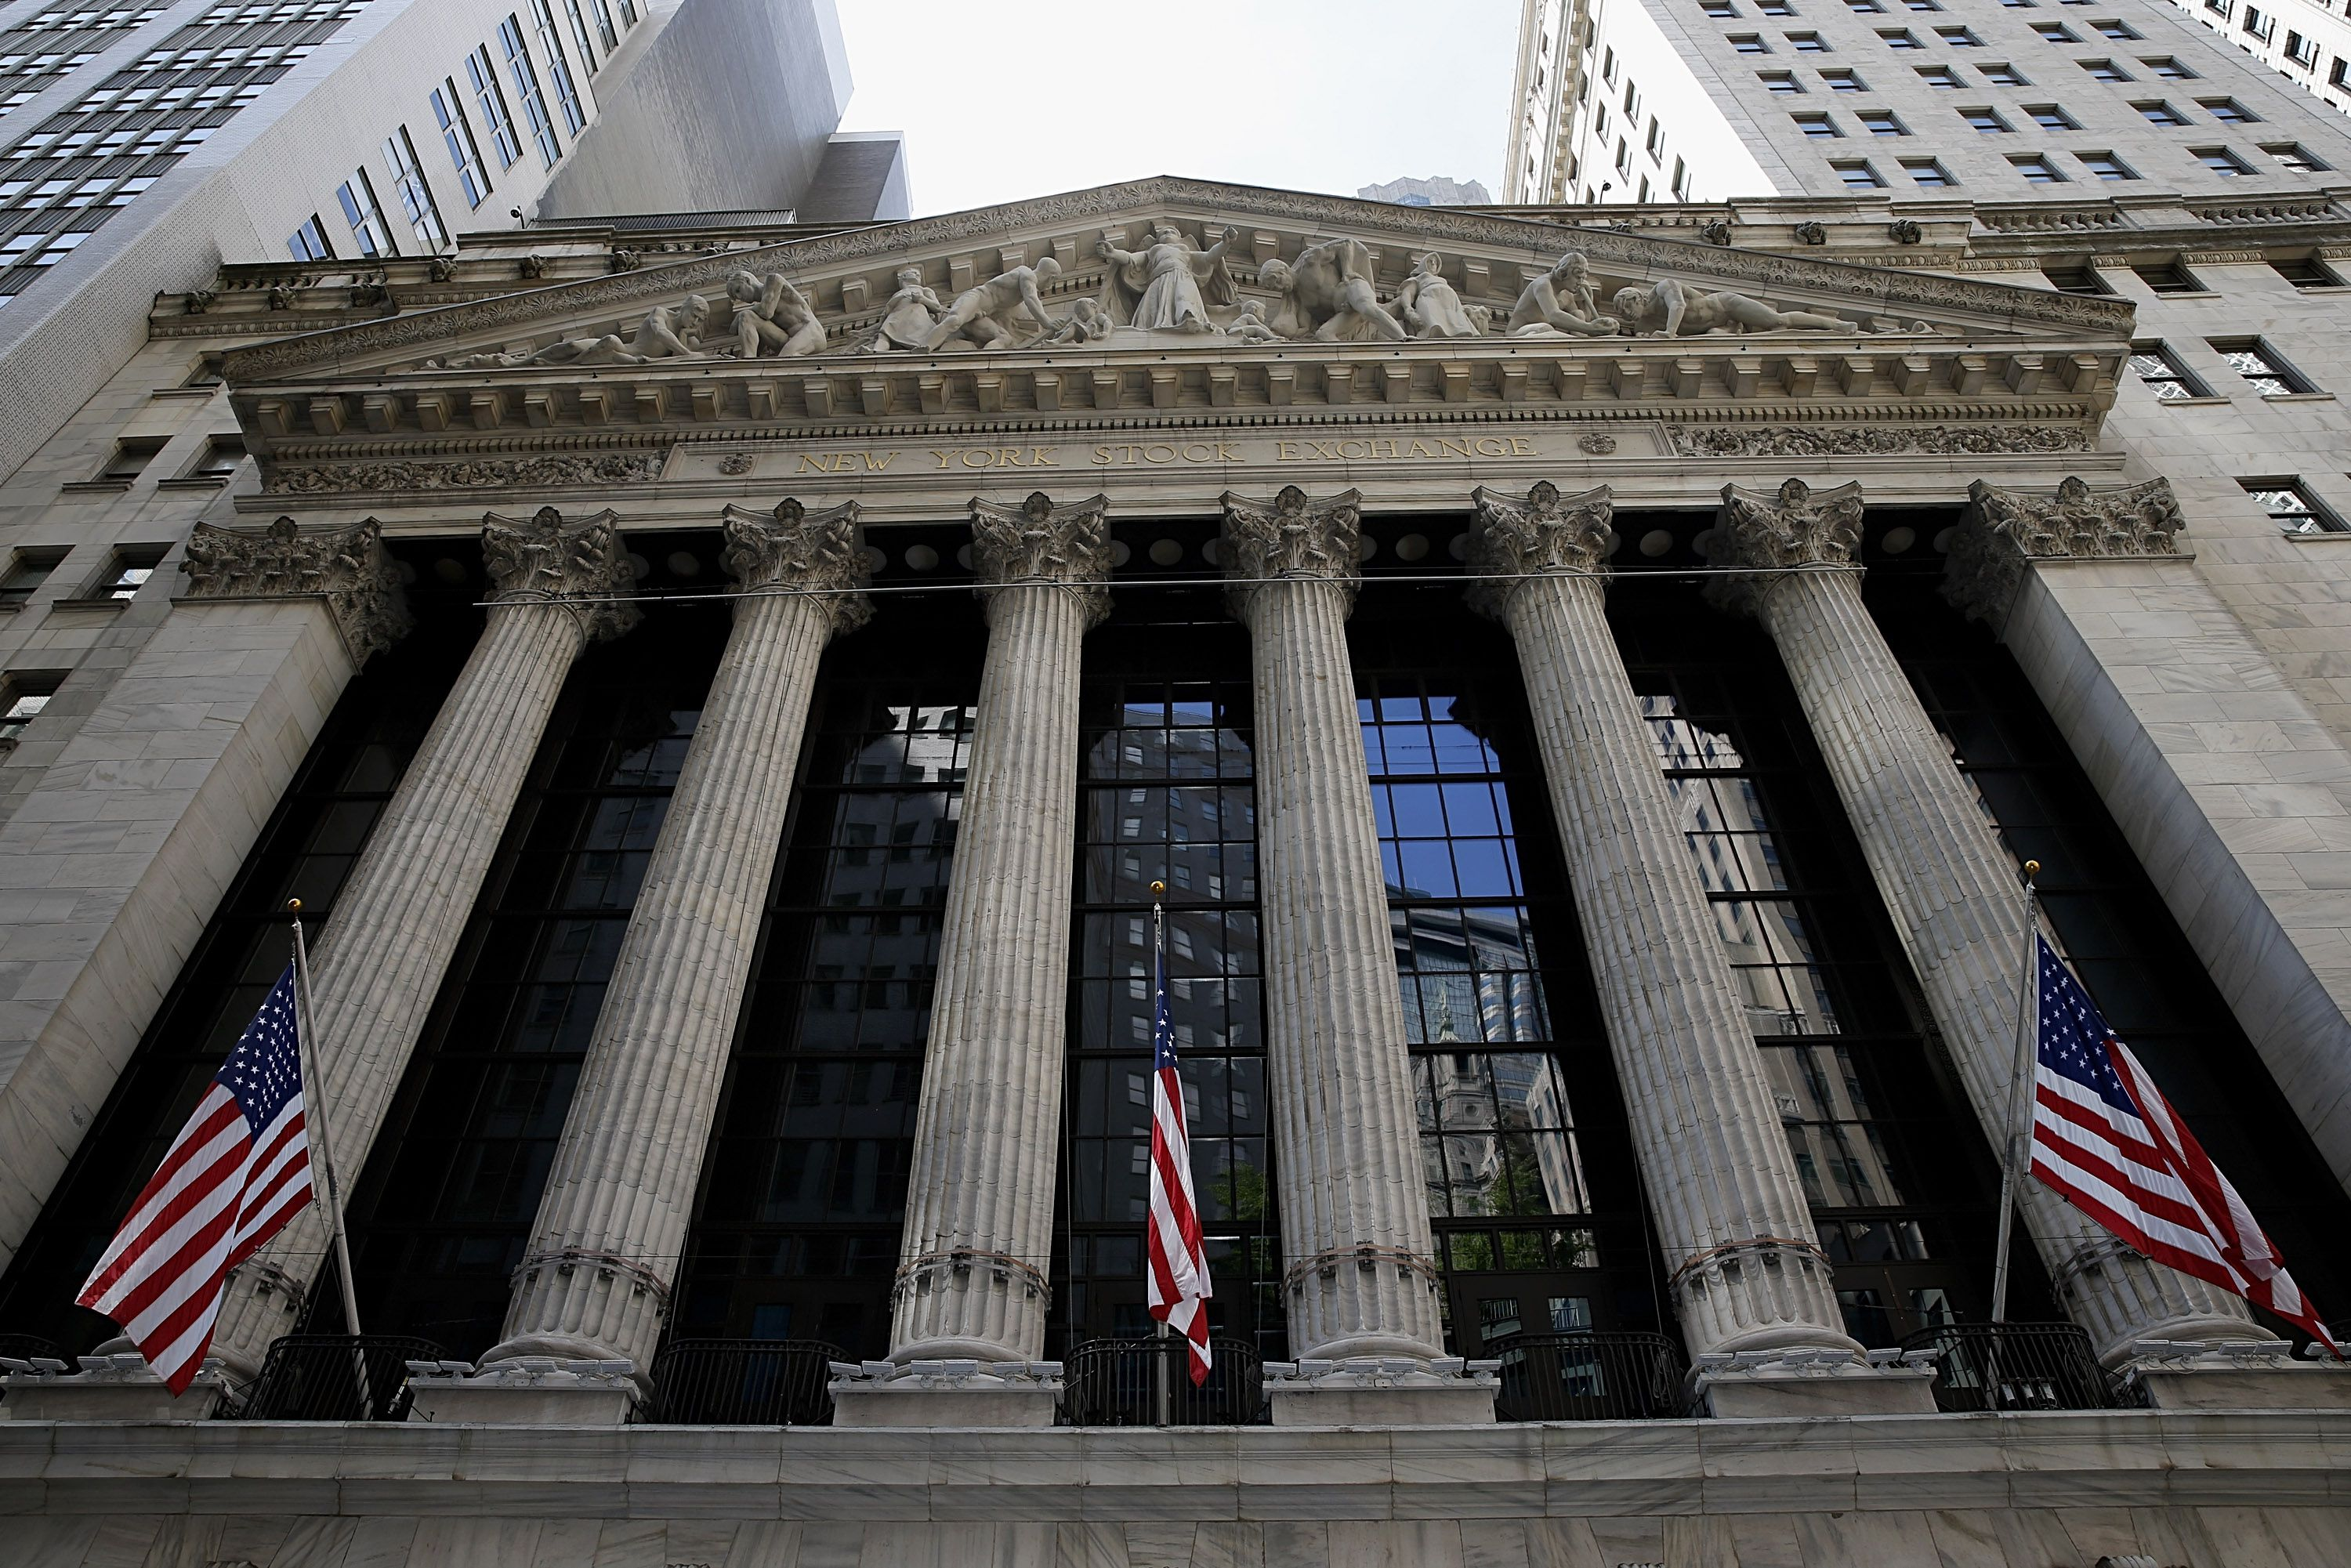 NYSE facade showing 6 fluted Corinthian columns visually create a building of strength and classic beauty.